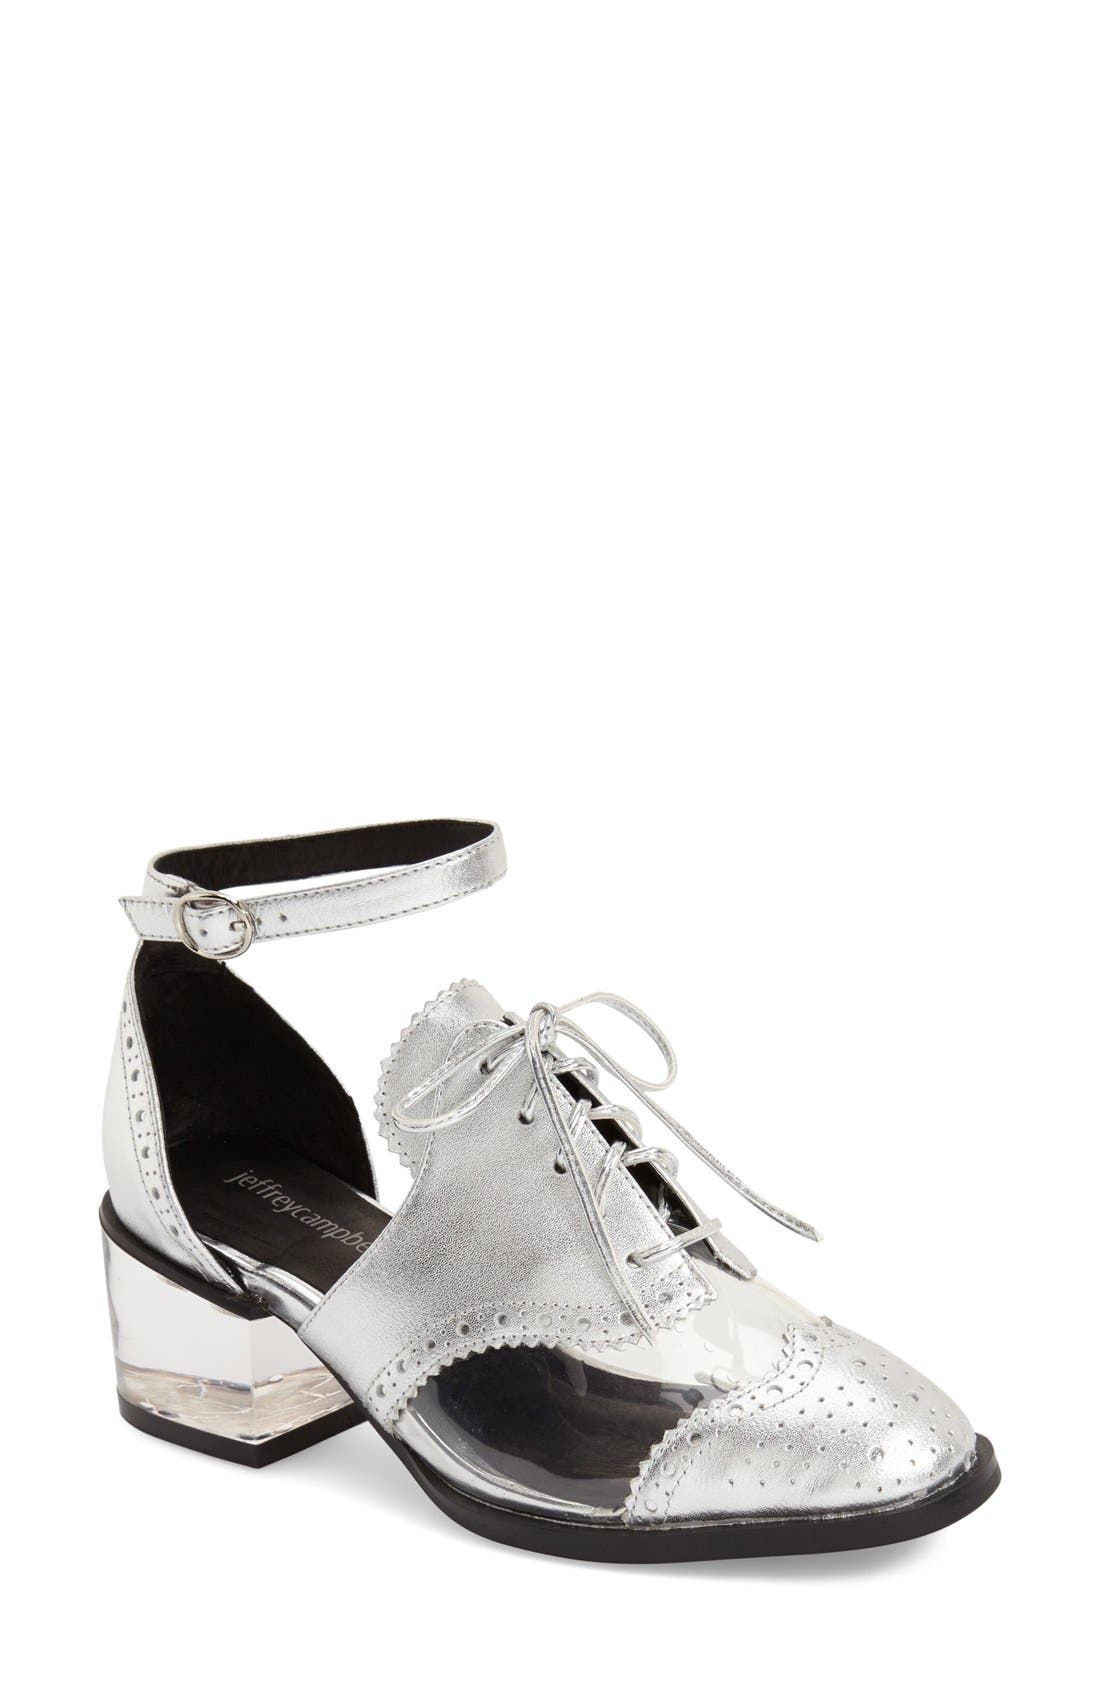 Alternate Image 1 Selected - Jeffrey Campbell 'Thoreau' Ankle Strap Oxford (Women)